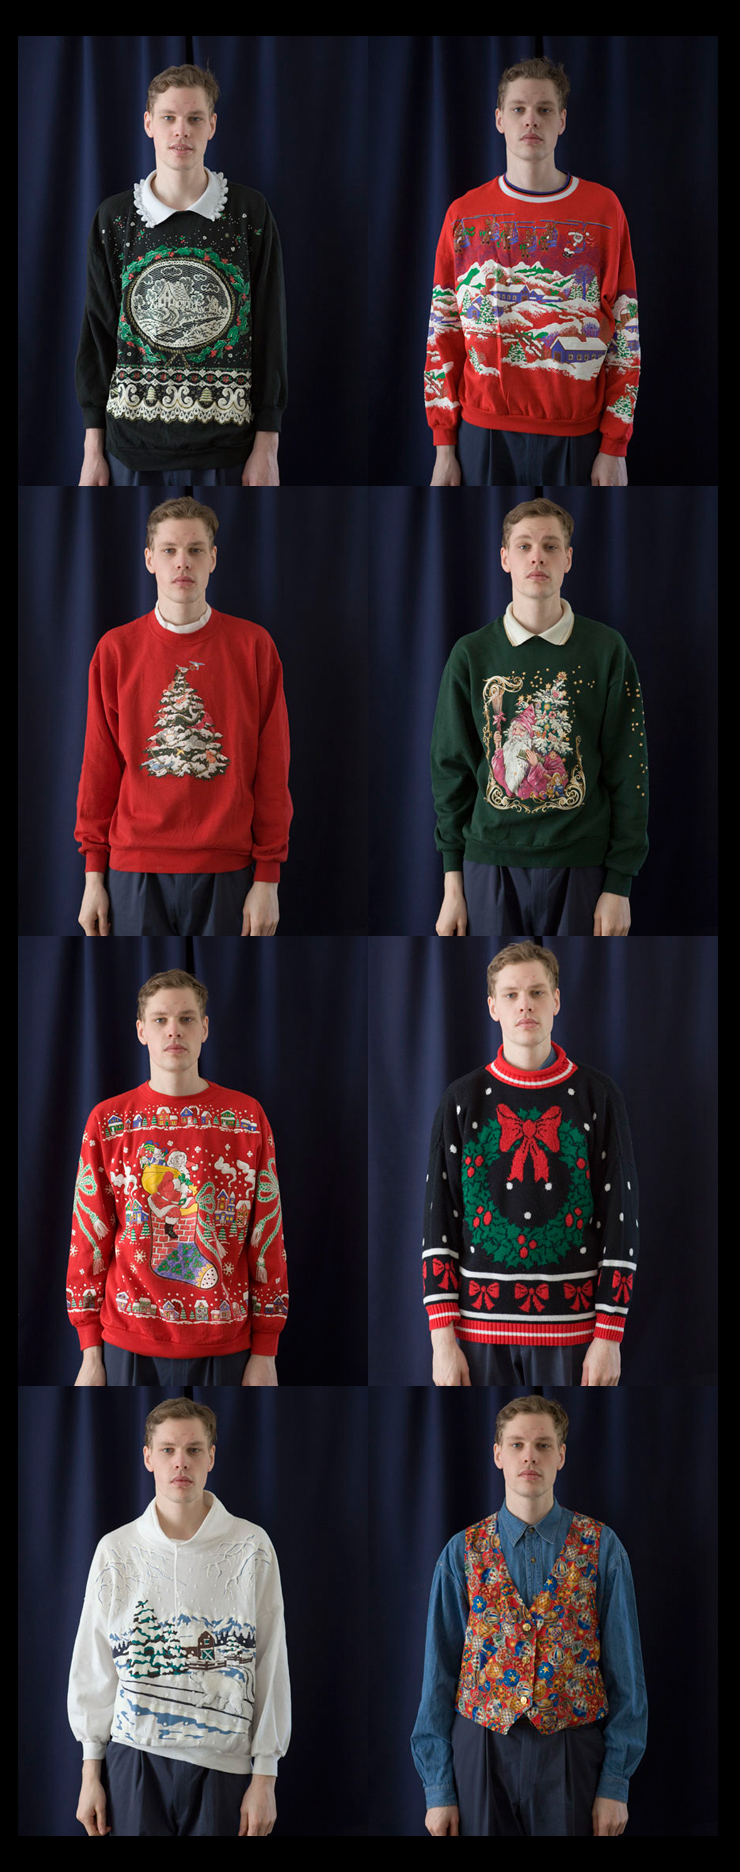 The Christmas Sweater Collection